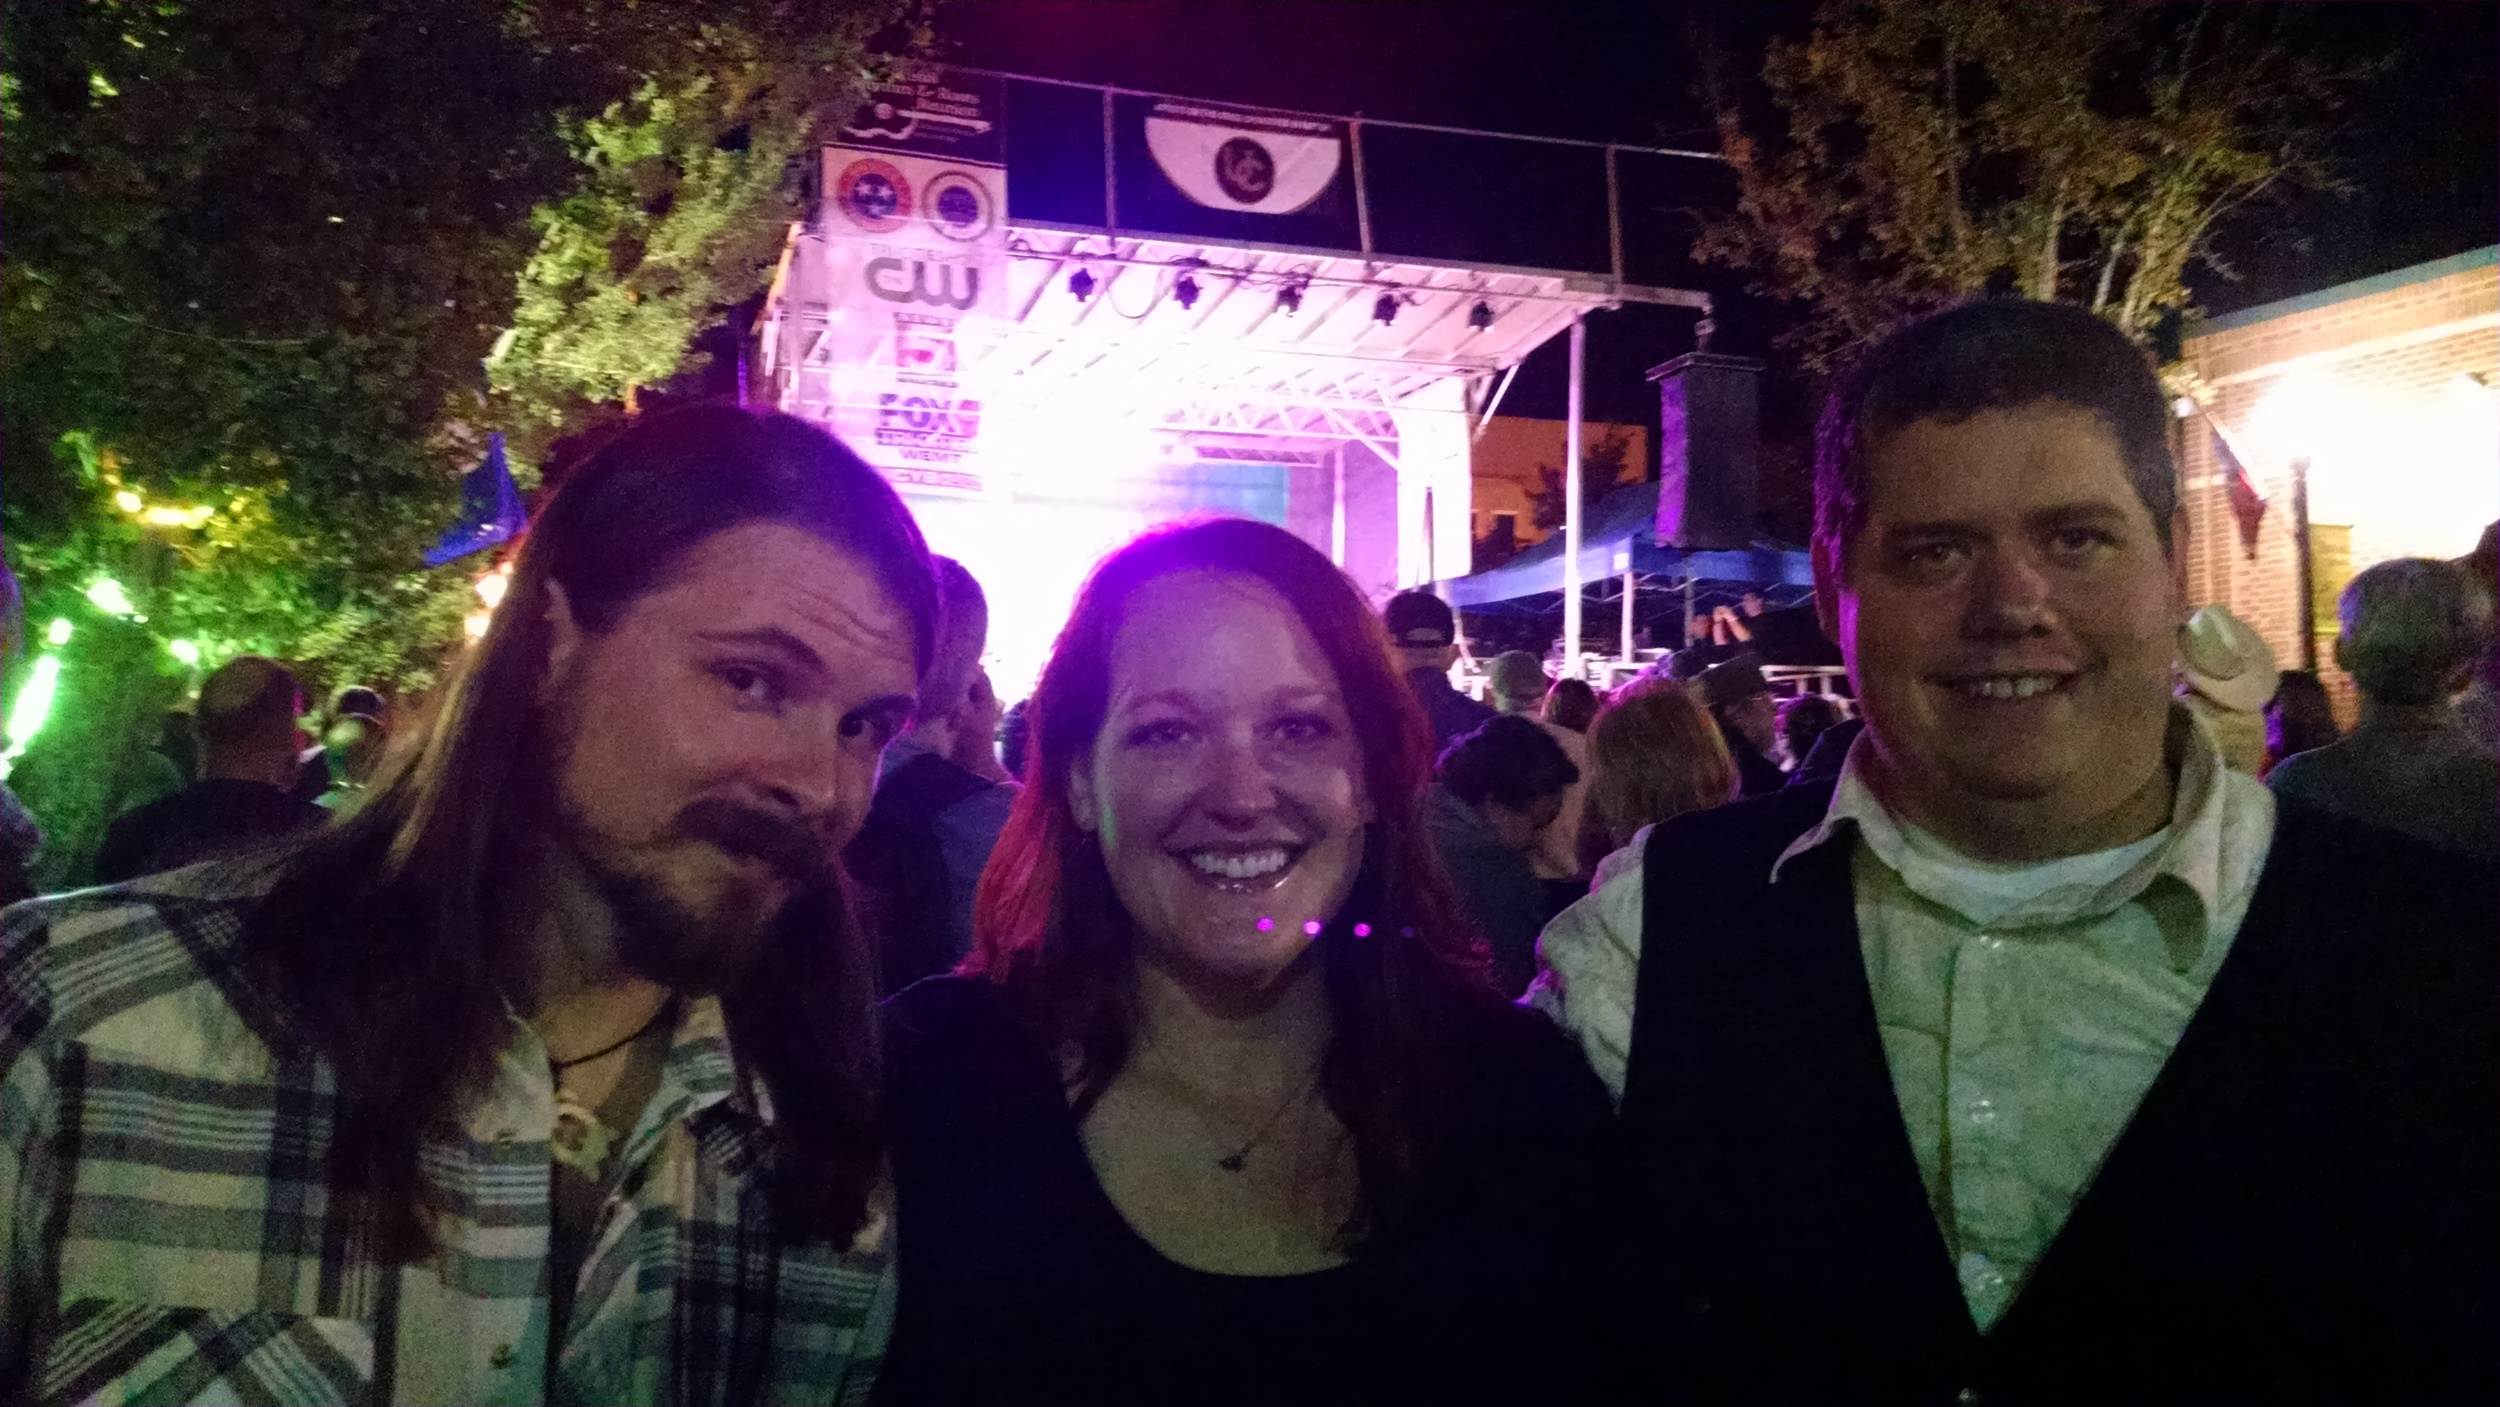 We caught Sturgill Simpson's Friday night set. Hot damn!  L to R: Dakota, Anna, & John.